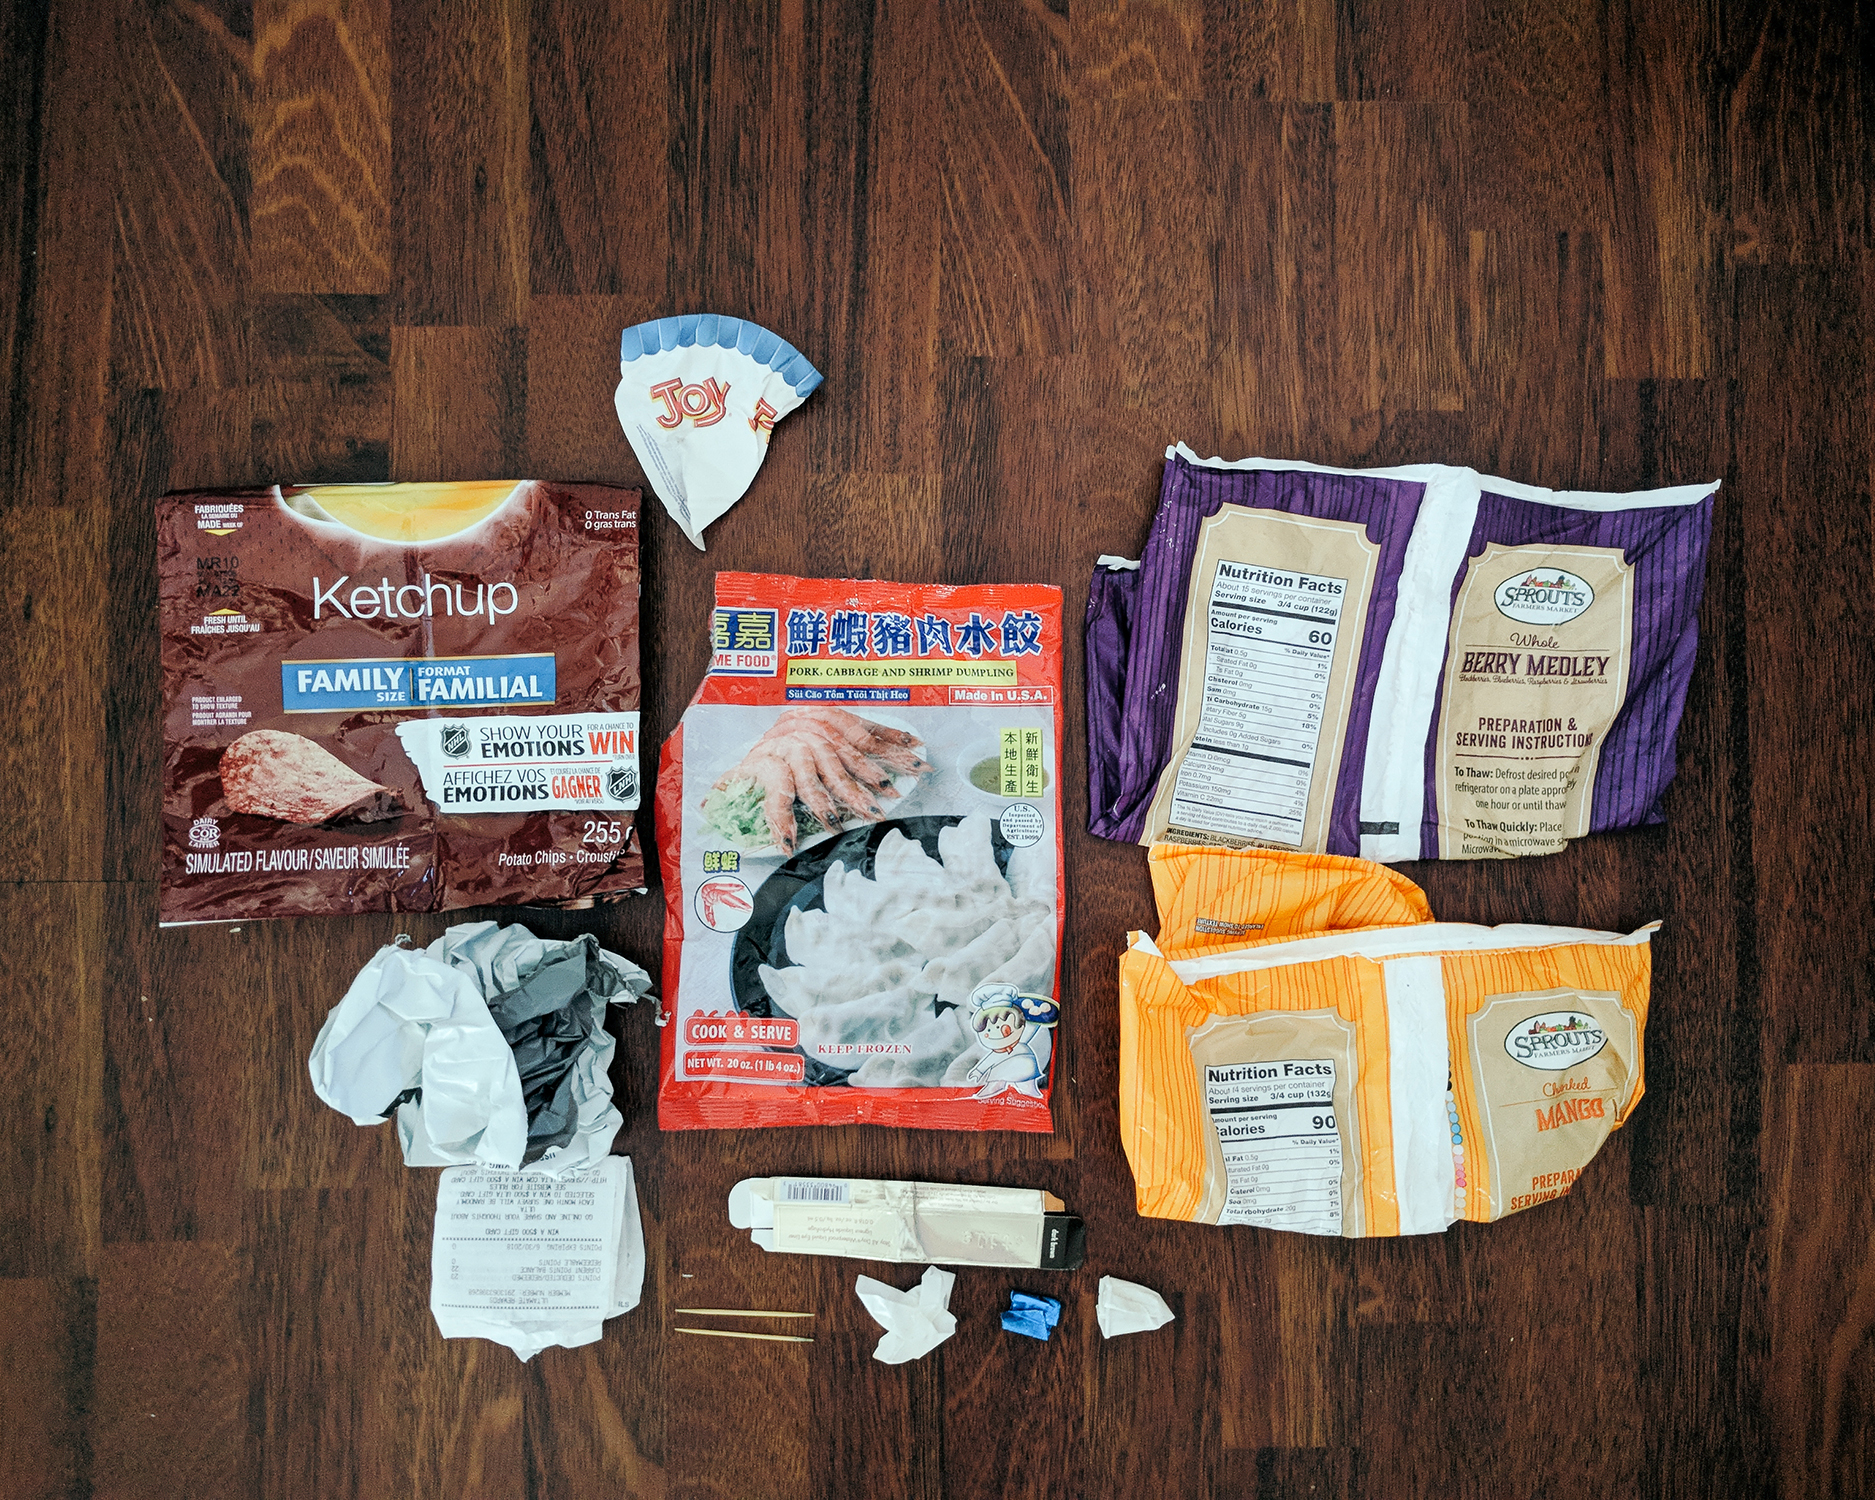 Packaging from Lay's Ketchup chips, clothes from online, receipts, wax-lined paper from an ice cream cone, Asian dumplings, eyeliner, toothpicks, sample cup, gum wrappers, and frozen fruits